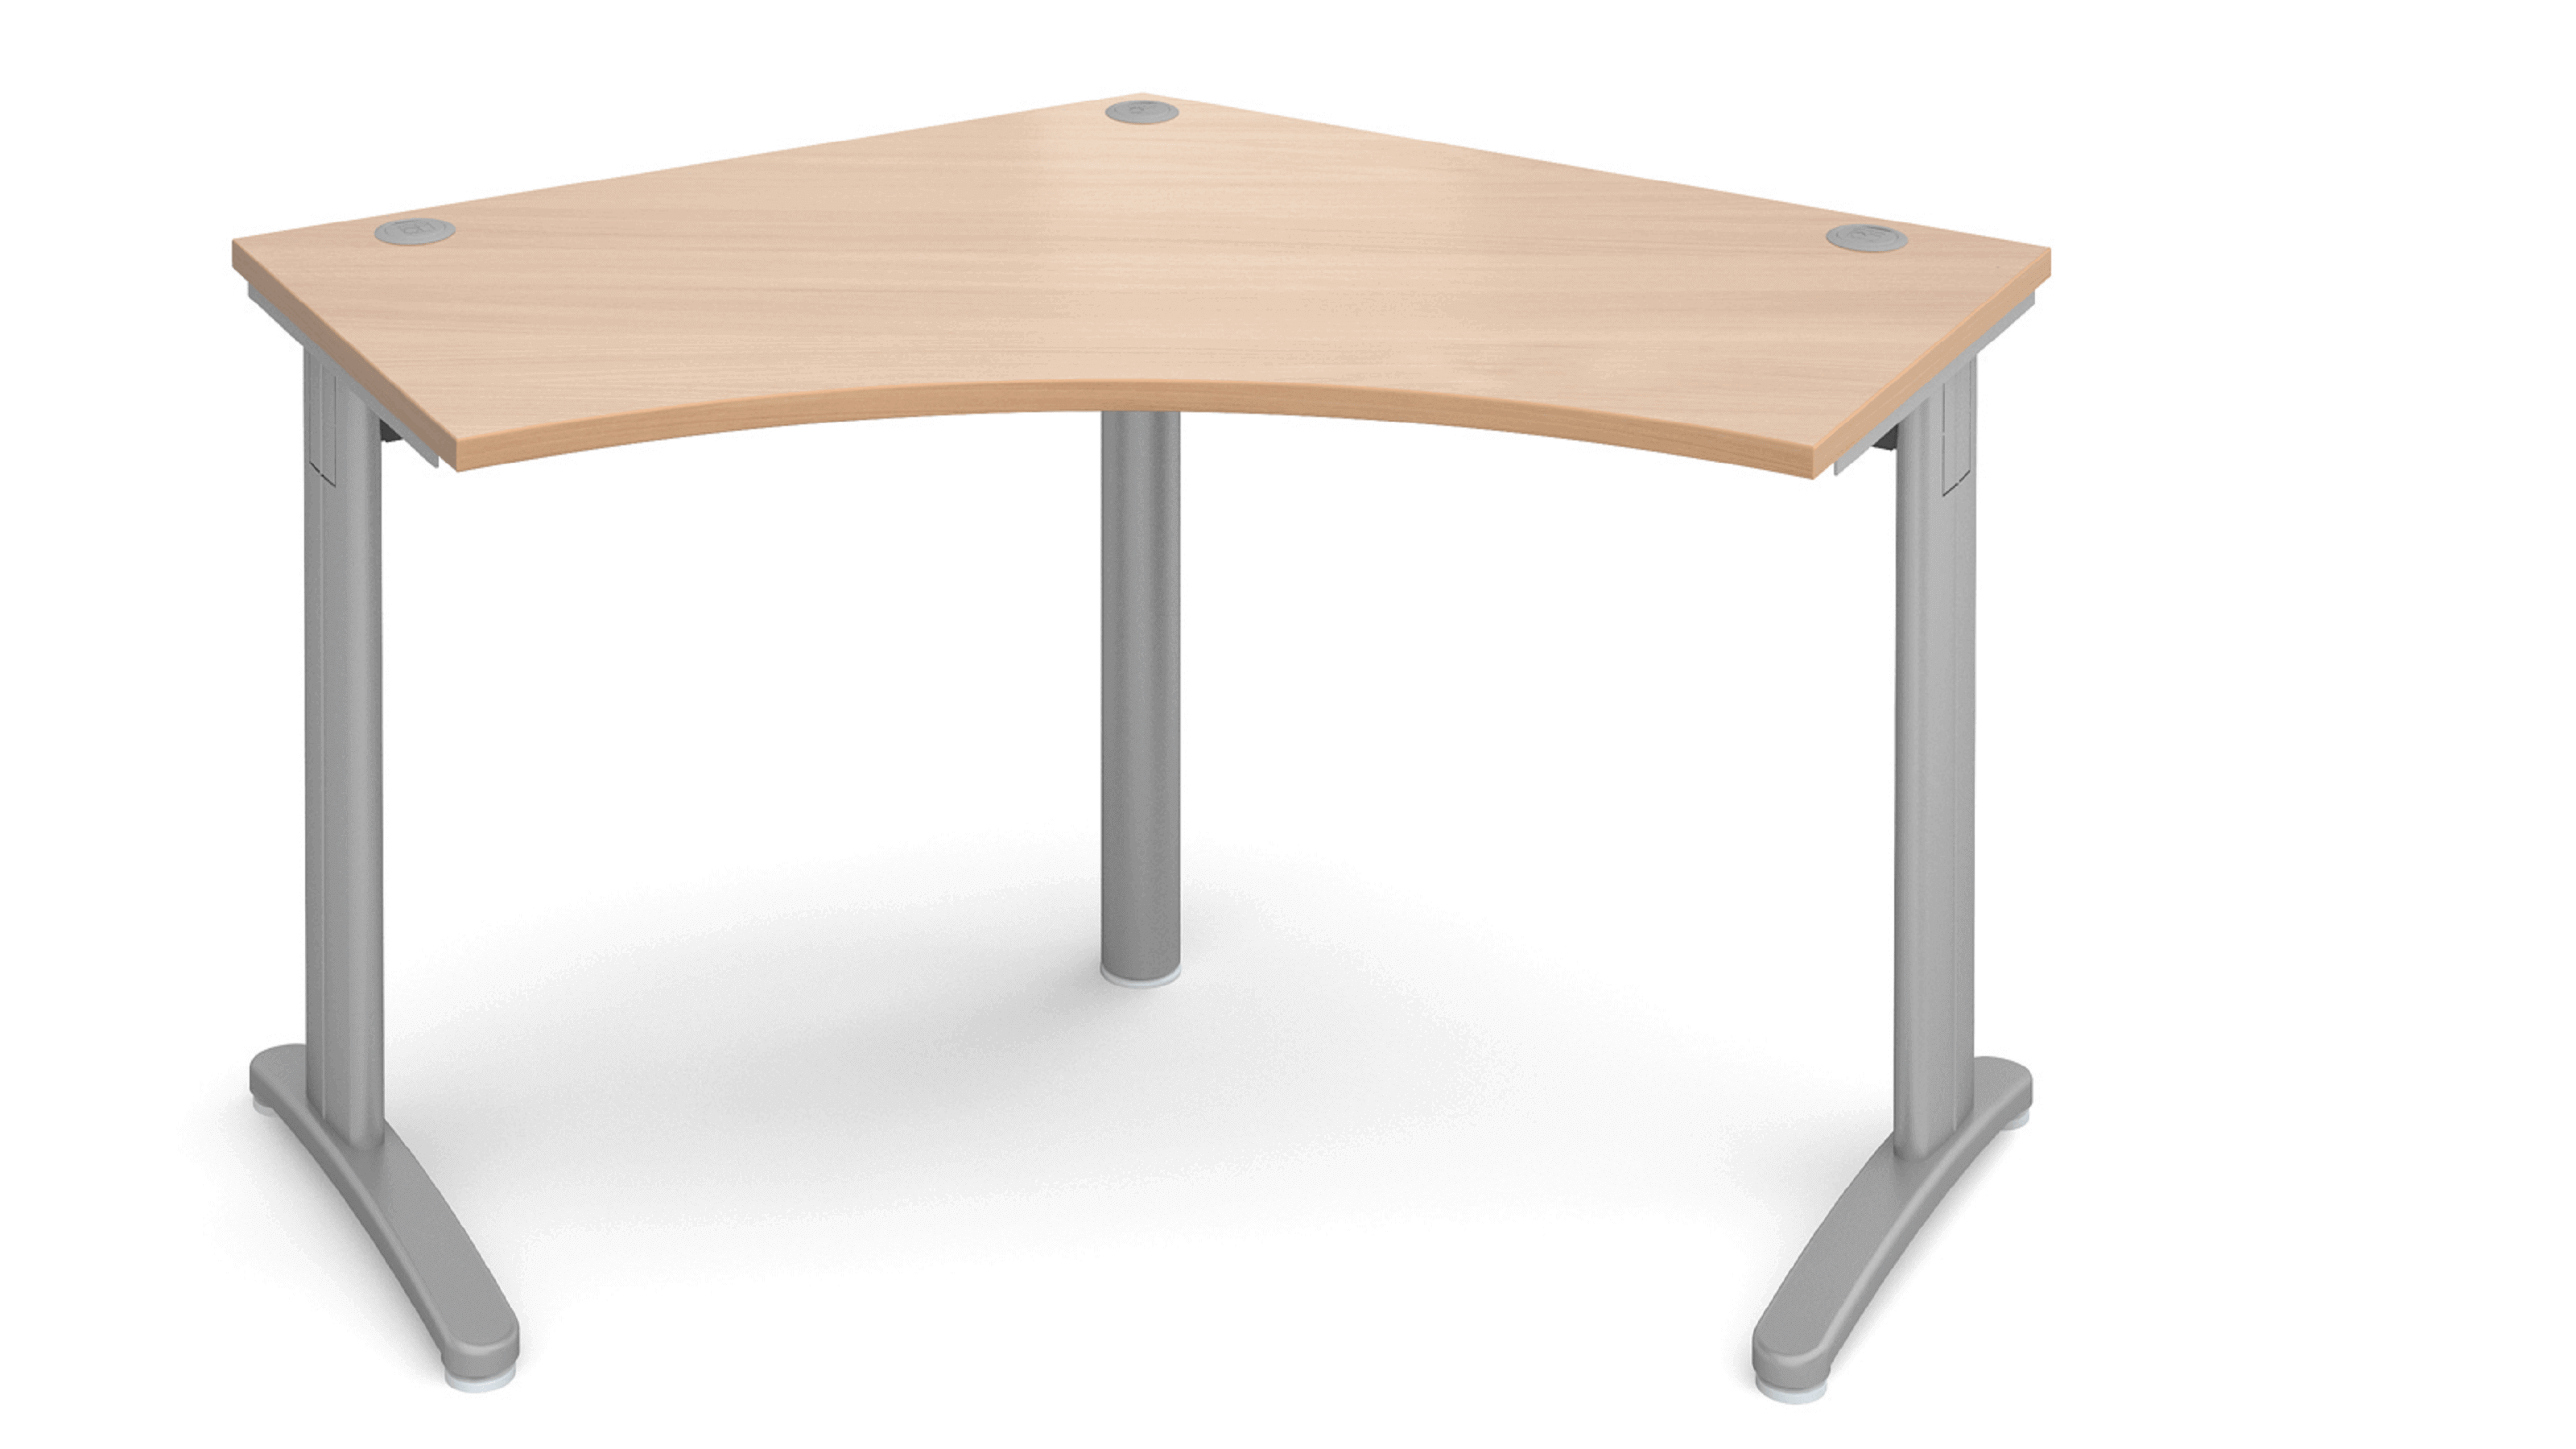 Tr10 Multi Functional Desk 120 Degree Top Image